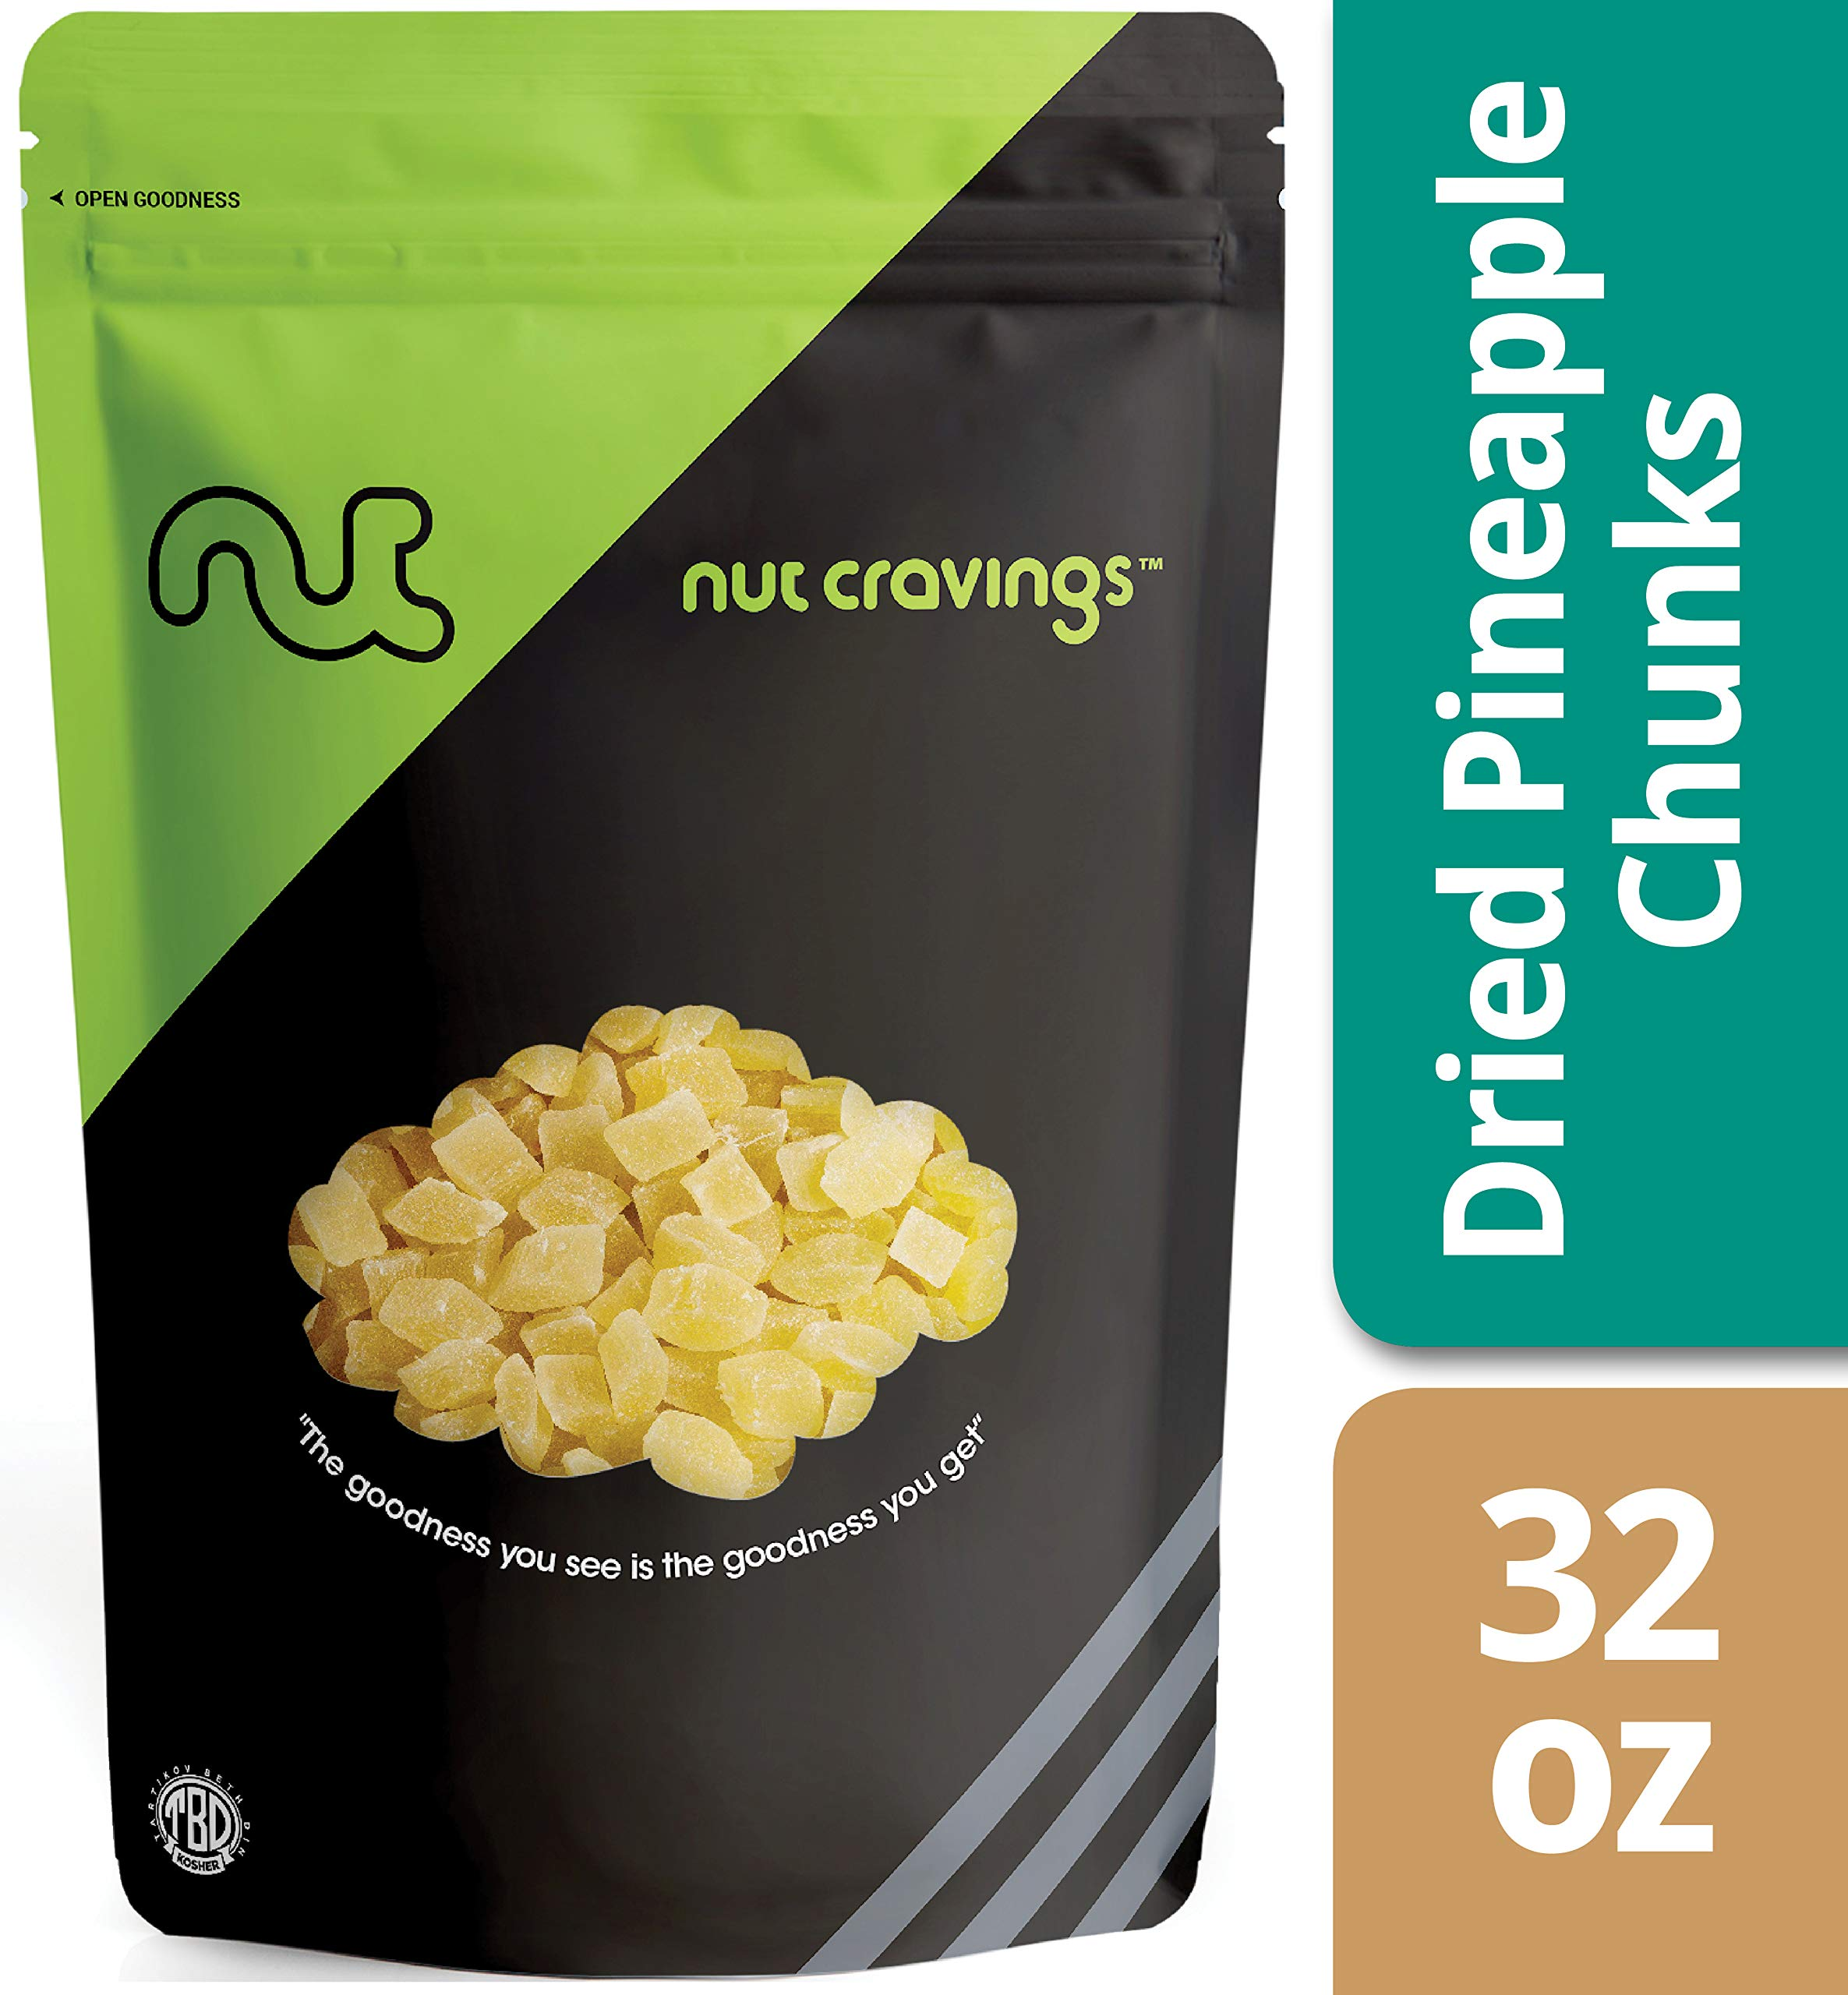 Nut Cravings Dried Pineapple Chunks (2 Pounds) - Sweet, Healthy Dehydrated Fruit Snacks with Sugar Added - 32 Ounce by Nut Cravings